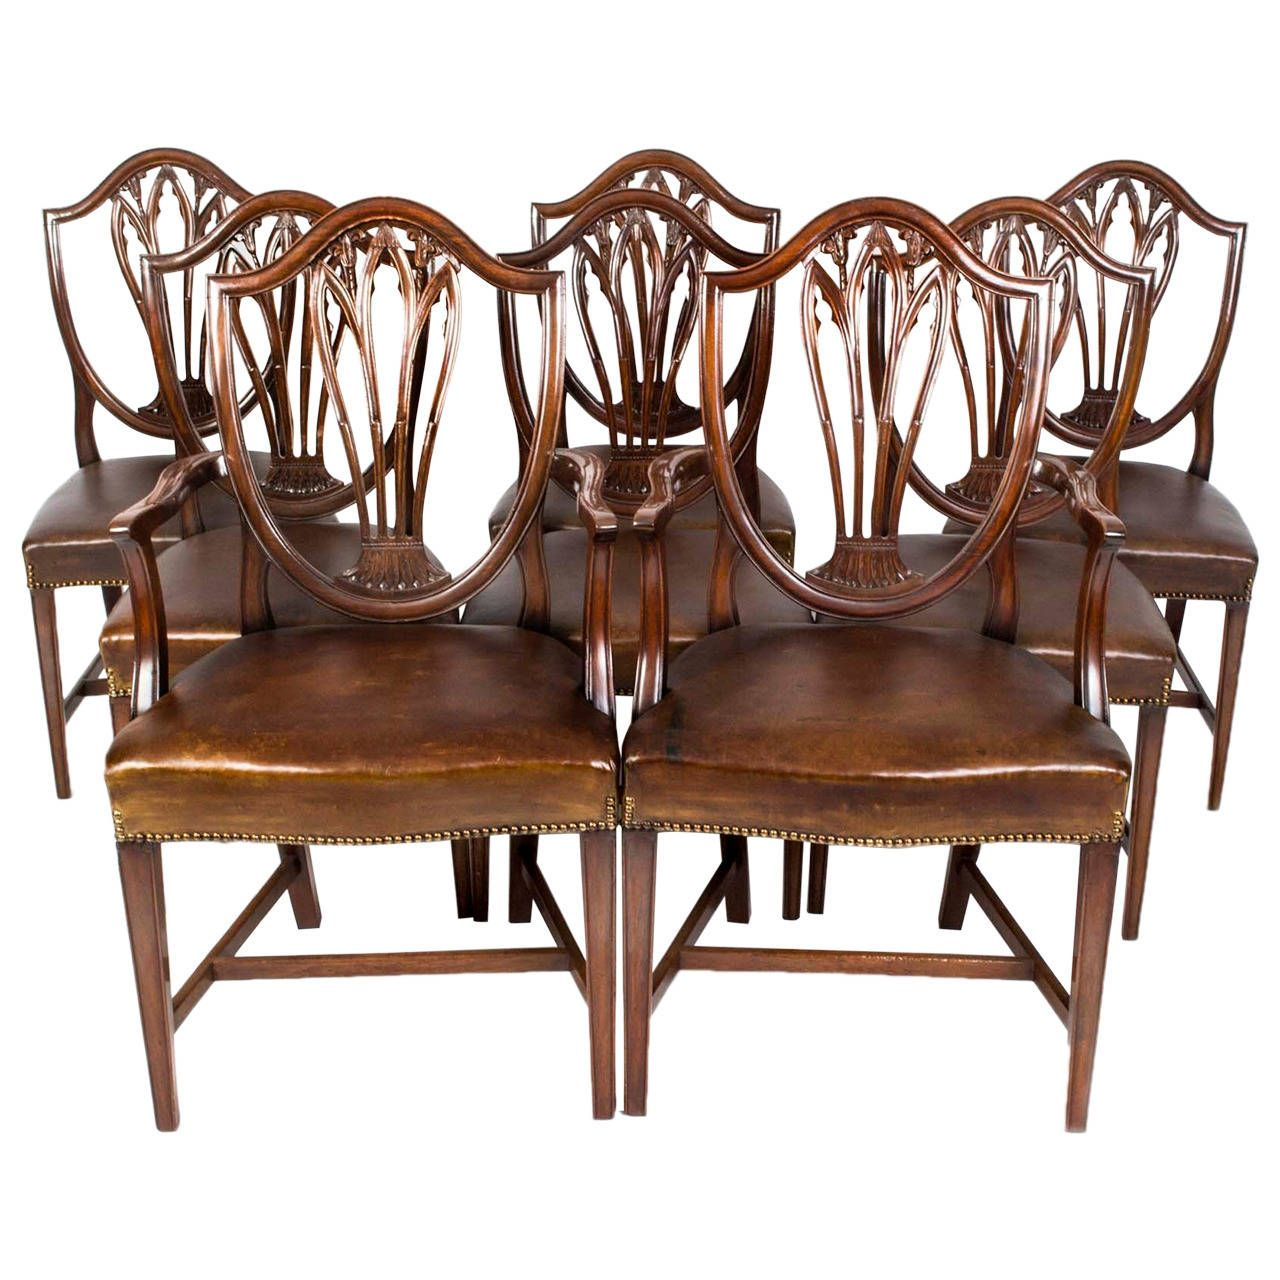 Antique Set 8 English Hepplewhite Dining Chairs c.1900 - Antique Set 8 English Hepplewhite Dining Chairs C.1900 Dining